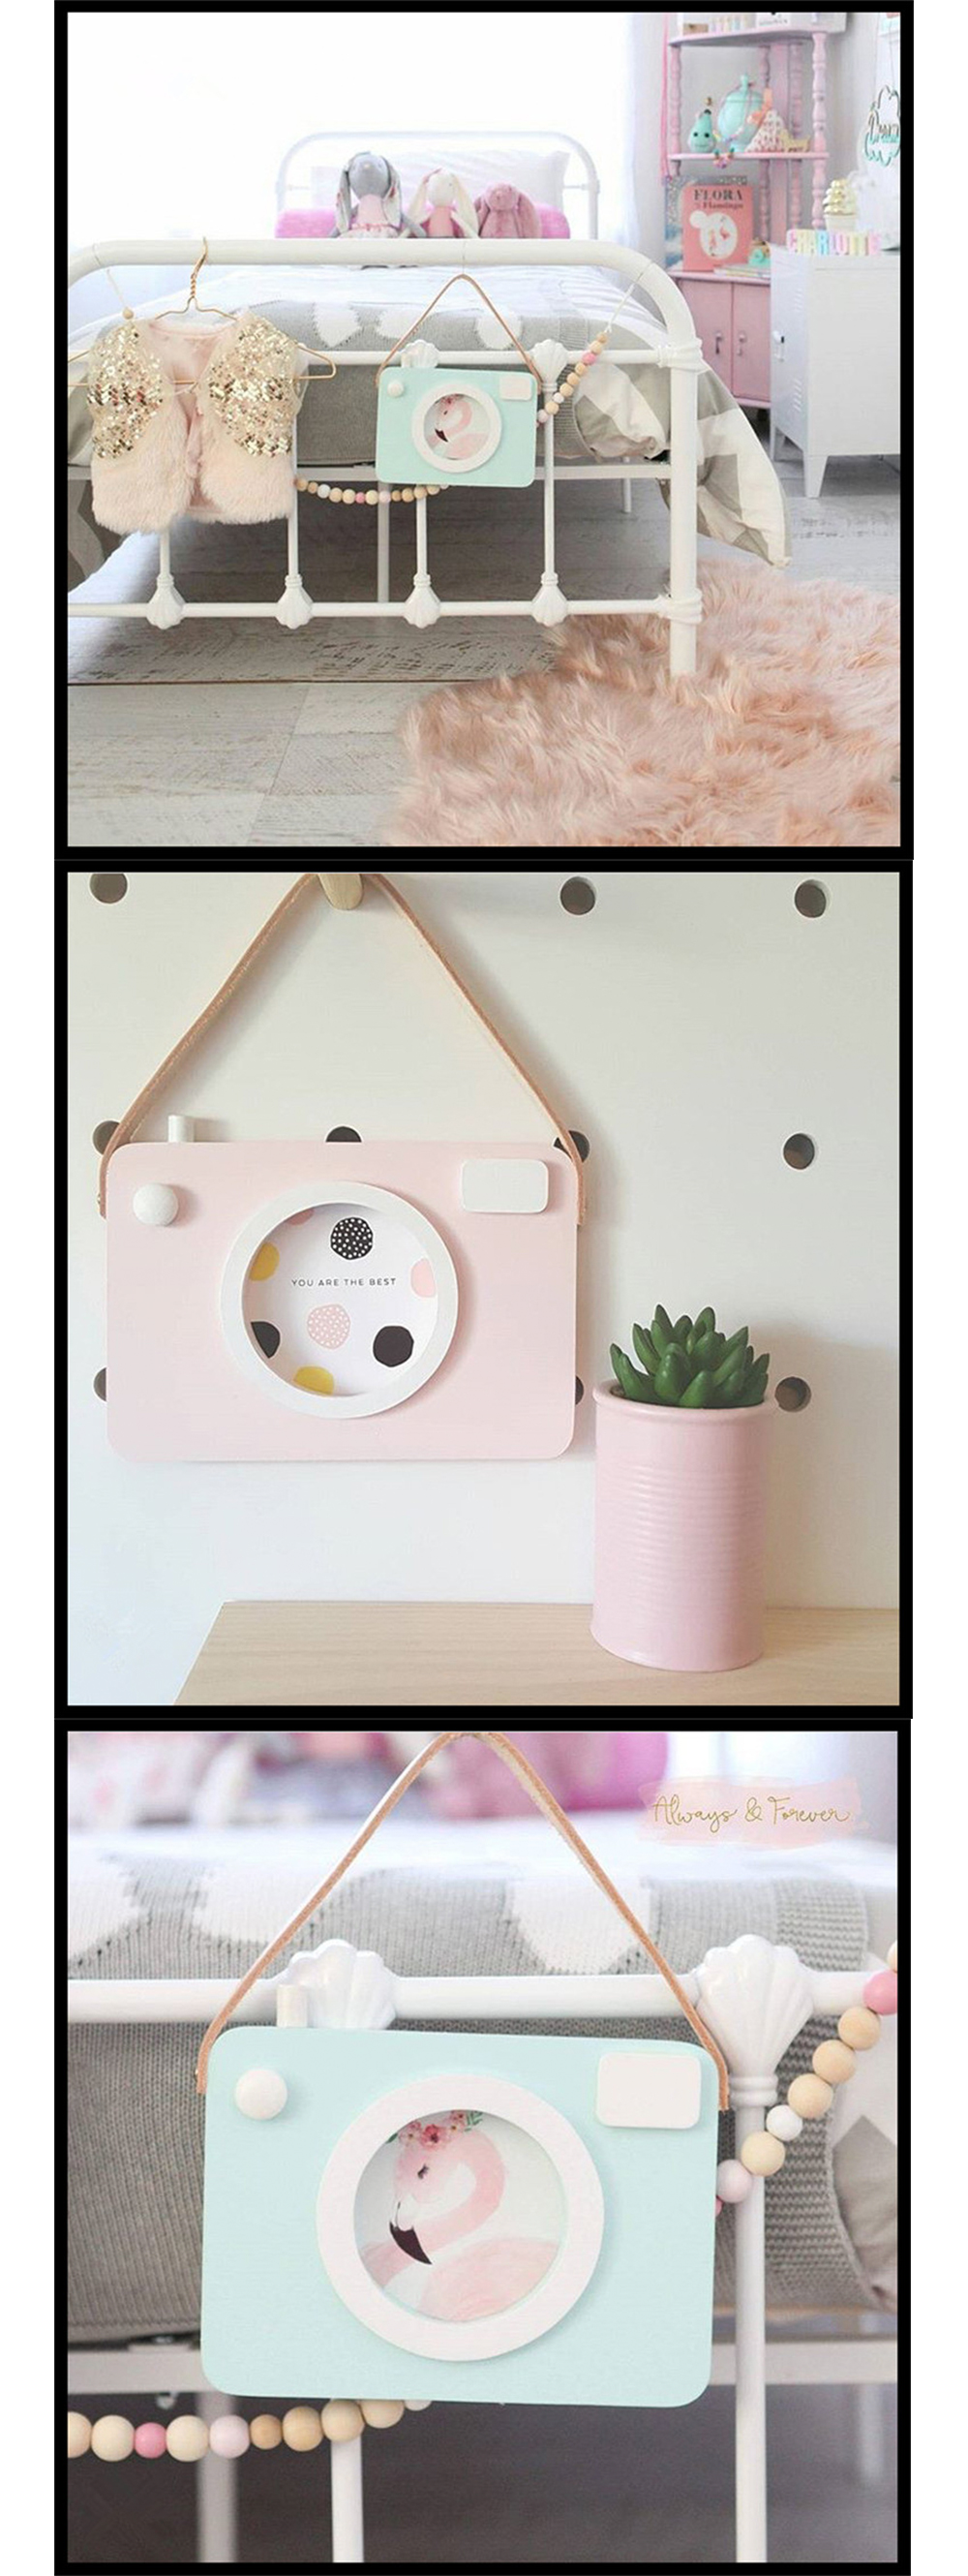 Camera Shaped Photo Frame Smile-Inducing Memories